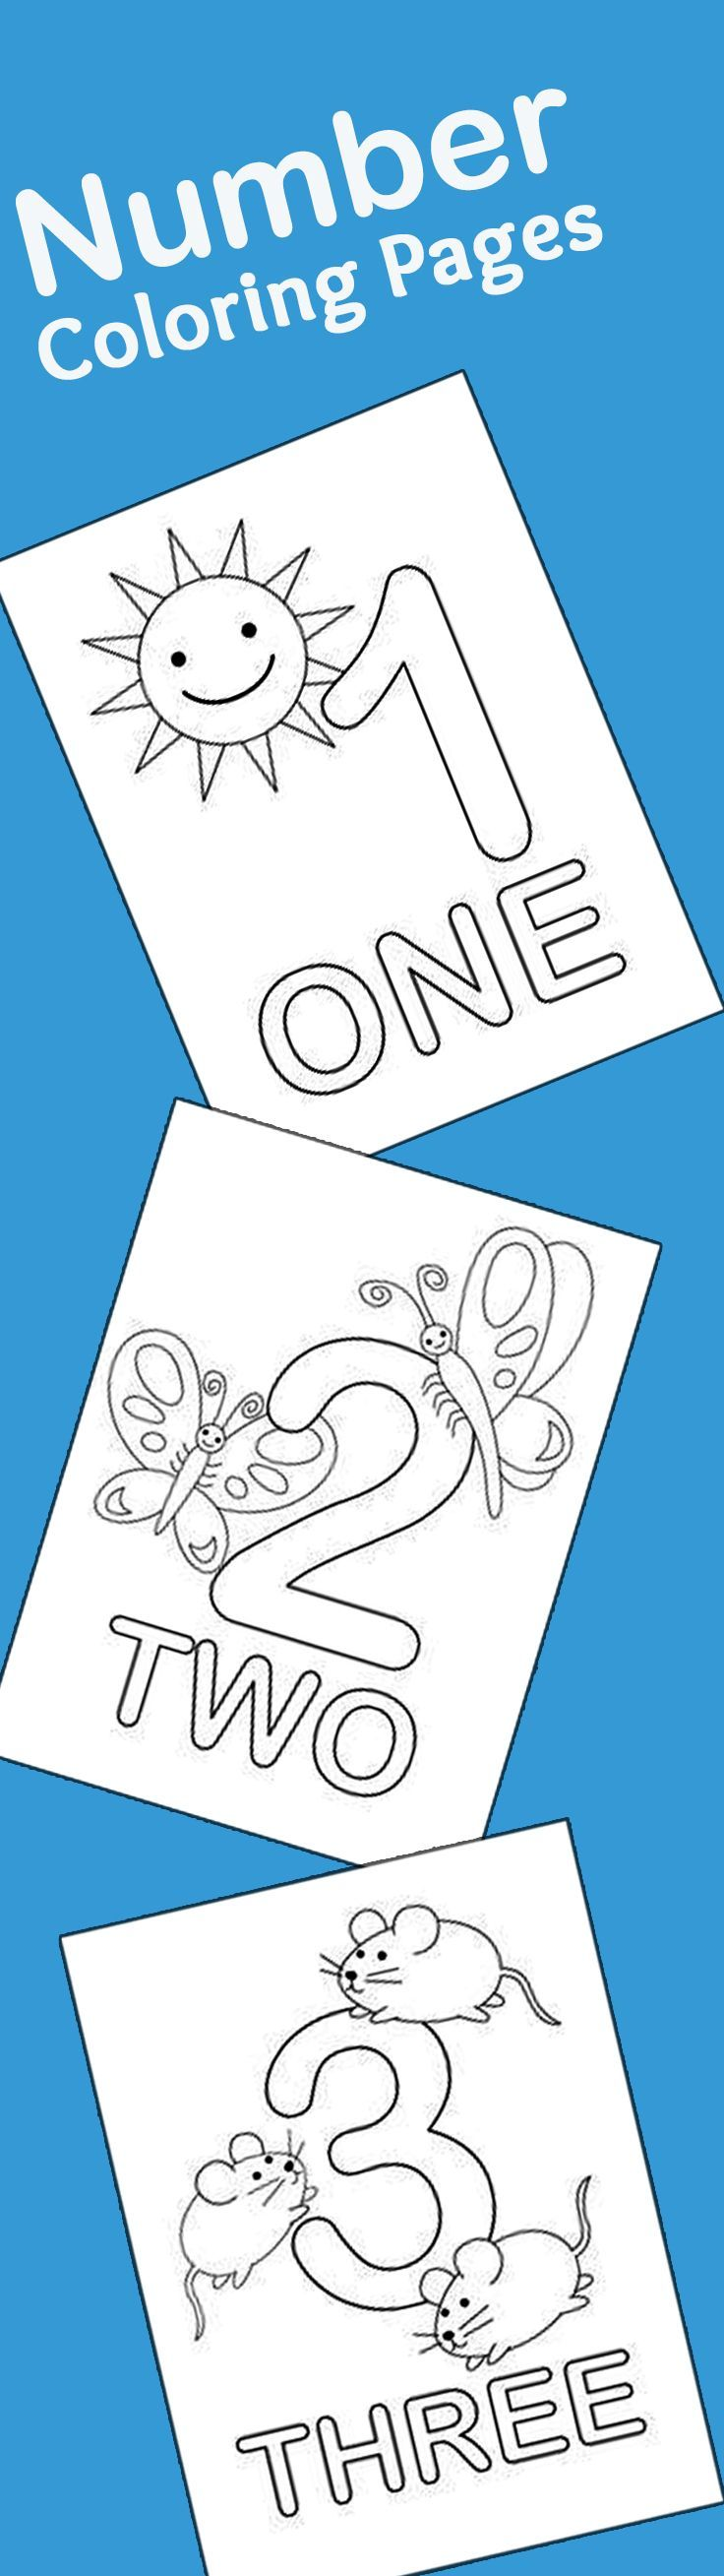 Colors for learning free printable learning colors coloring pages are - Top 21 Free Printable Number Coloring Pages Online